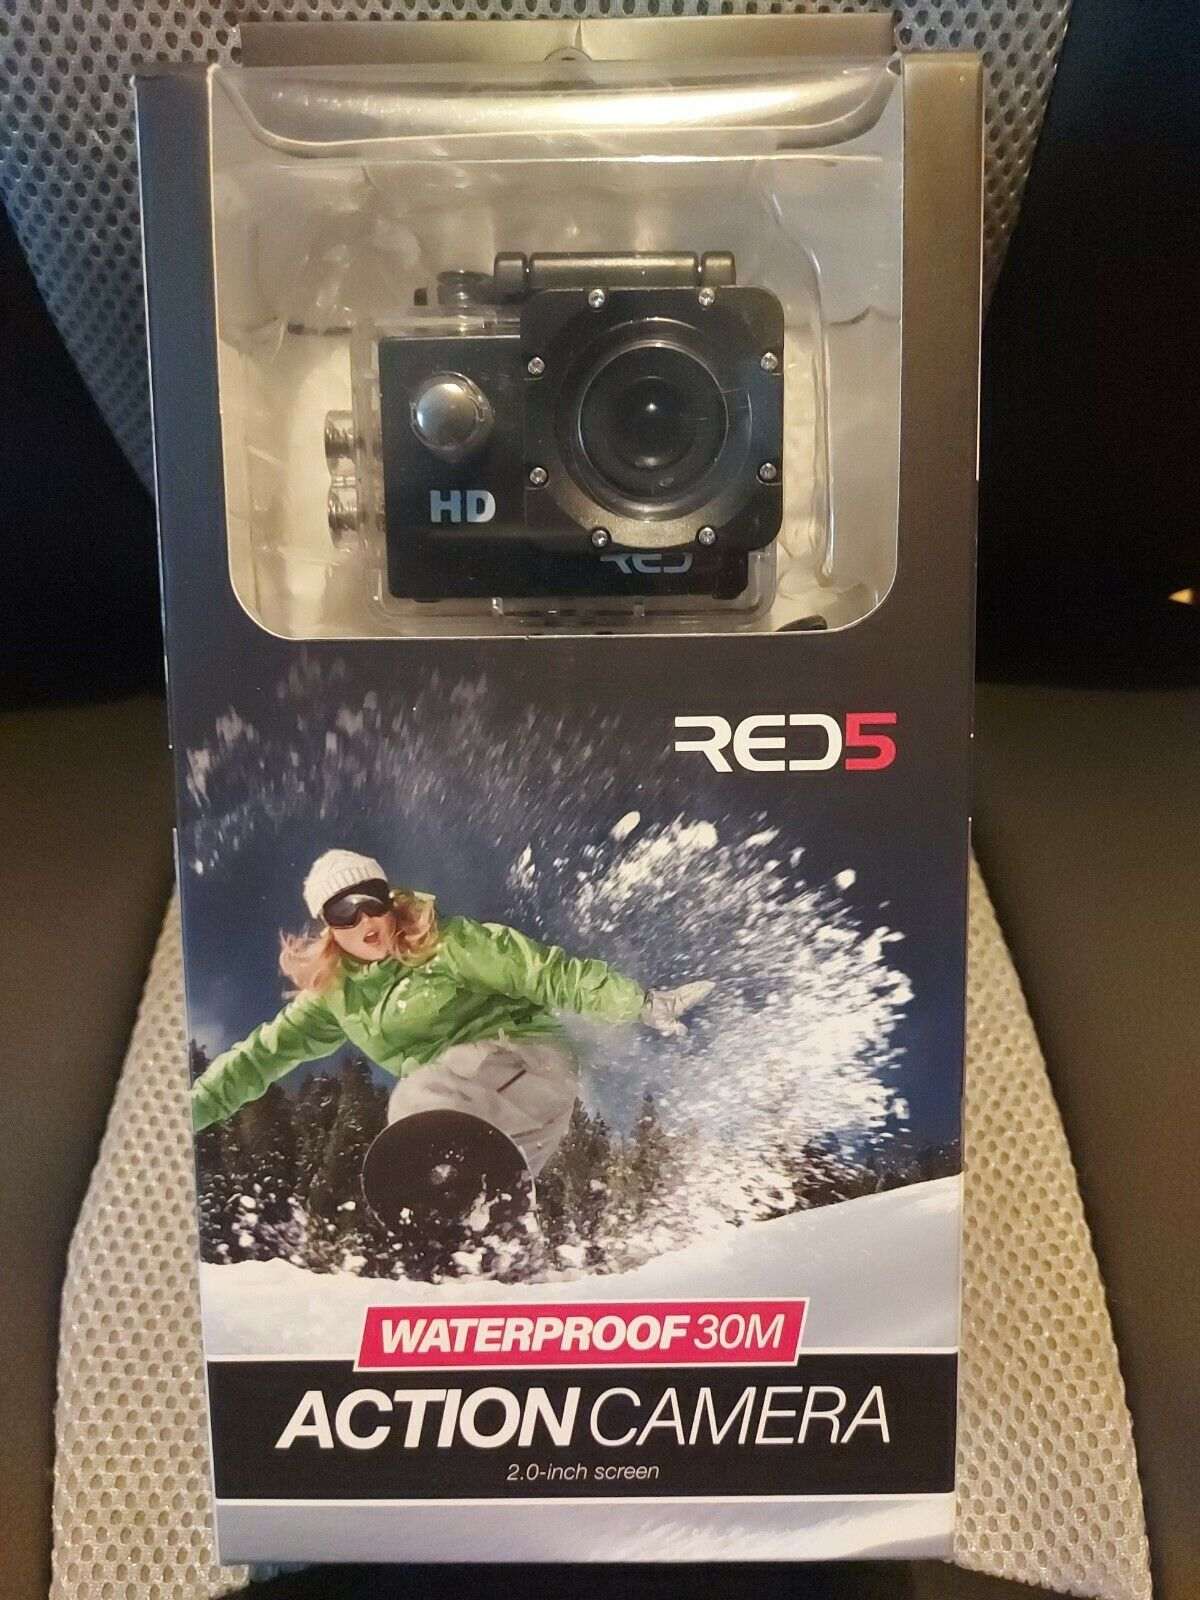 •RED 5 Action Camera • Waterproof 30m • HD 1080p • 2.0-inch Screen • Brand New•